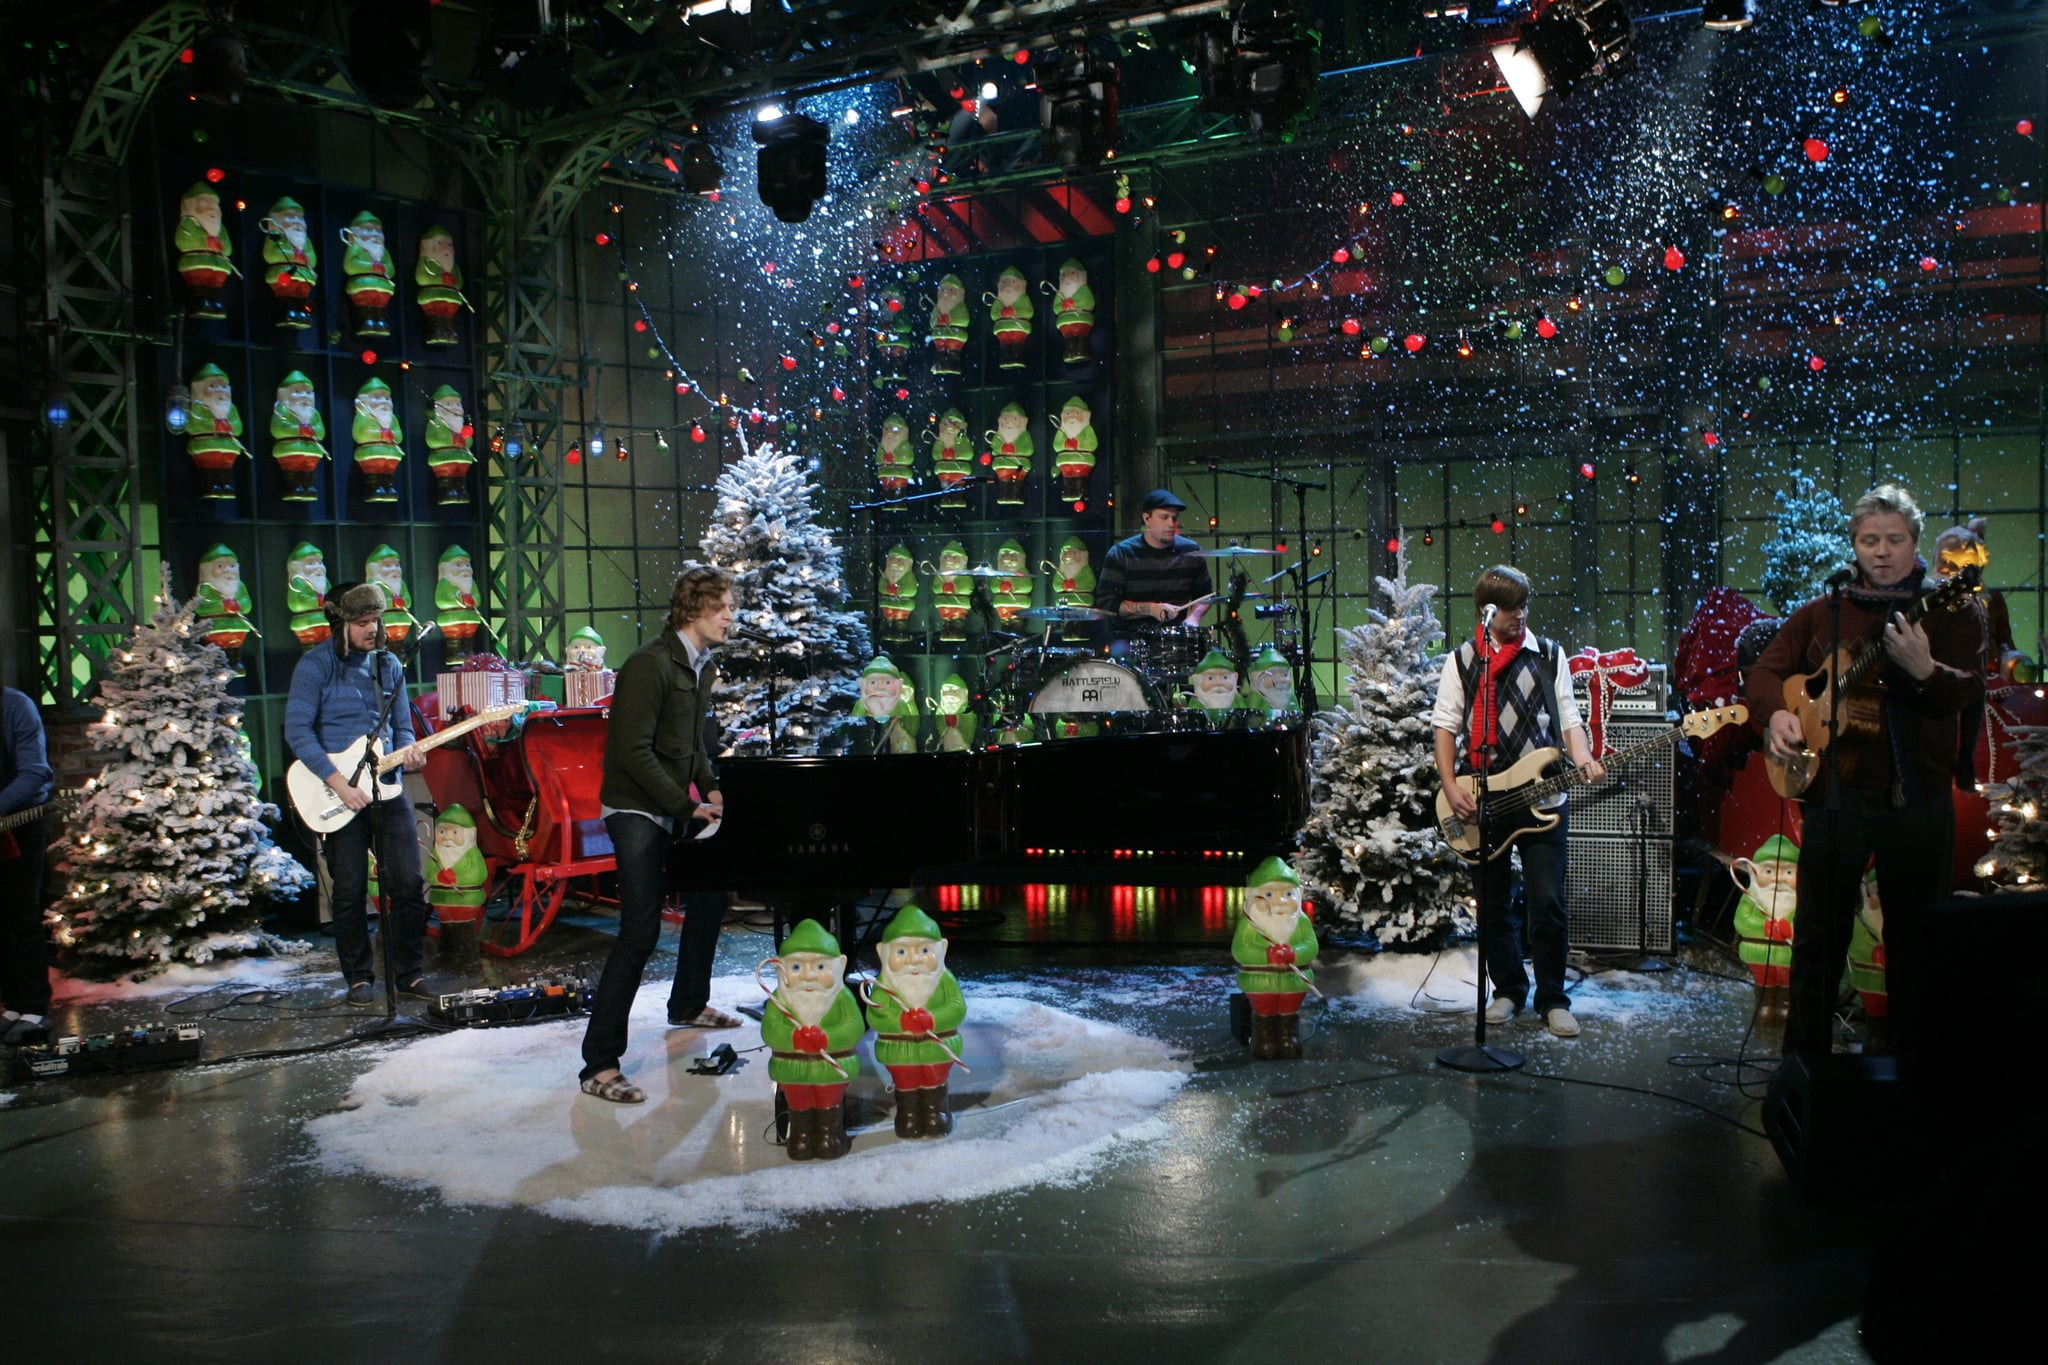 THE TONIGHT SHOW WITH JAY LENO -- Relient K -- Episode 3677 -- Air Date 12/16/2008 -- Pictured: Musical guest Relient K performs on December 16, 2008  (Photo by Paul Drinkwater/NBCU Photo Bank/NBCUniversal via Getty Images via Getty Images)